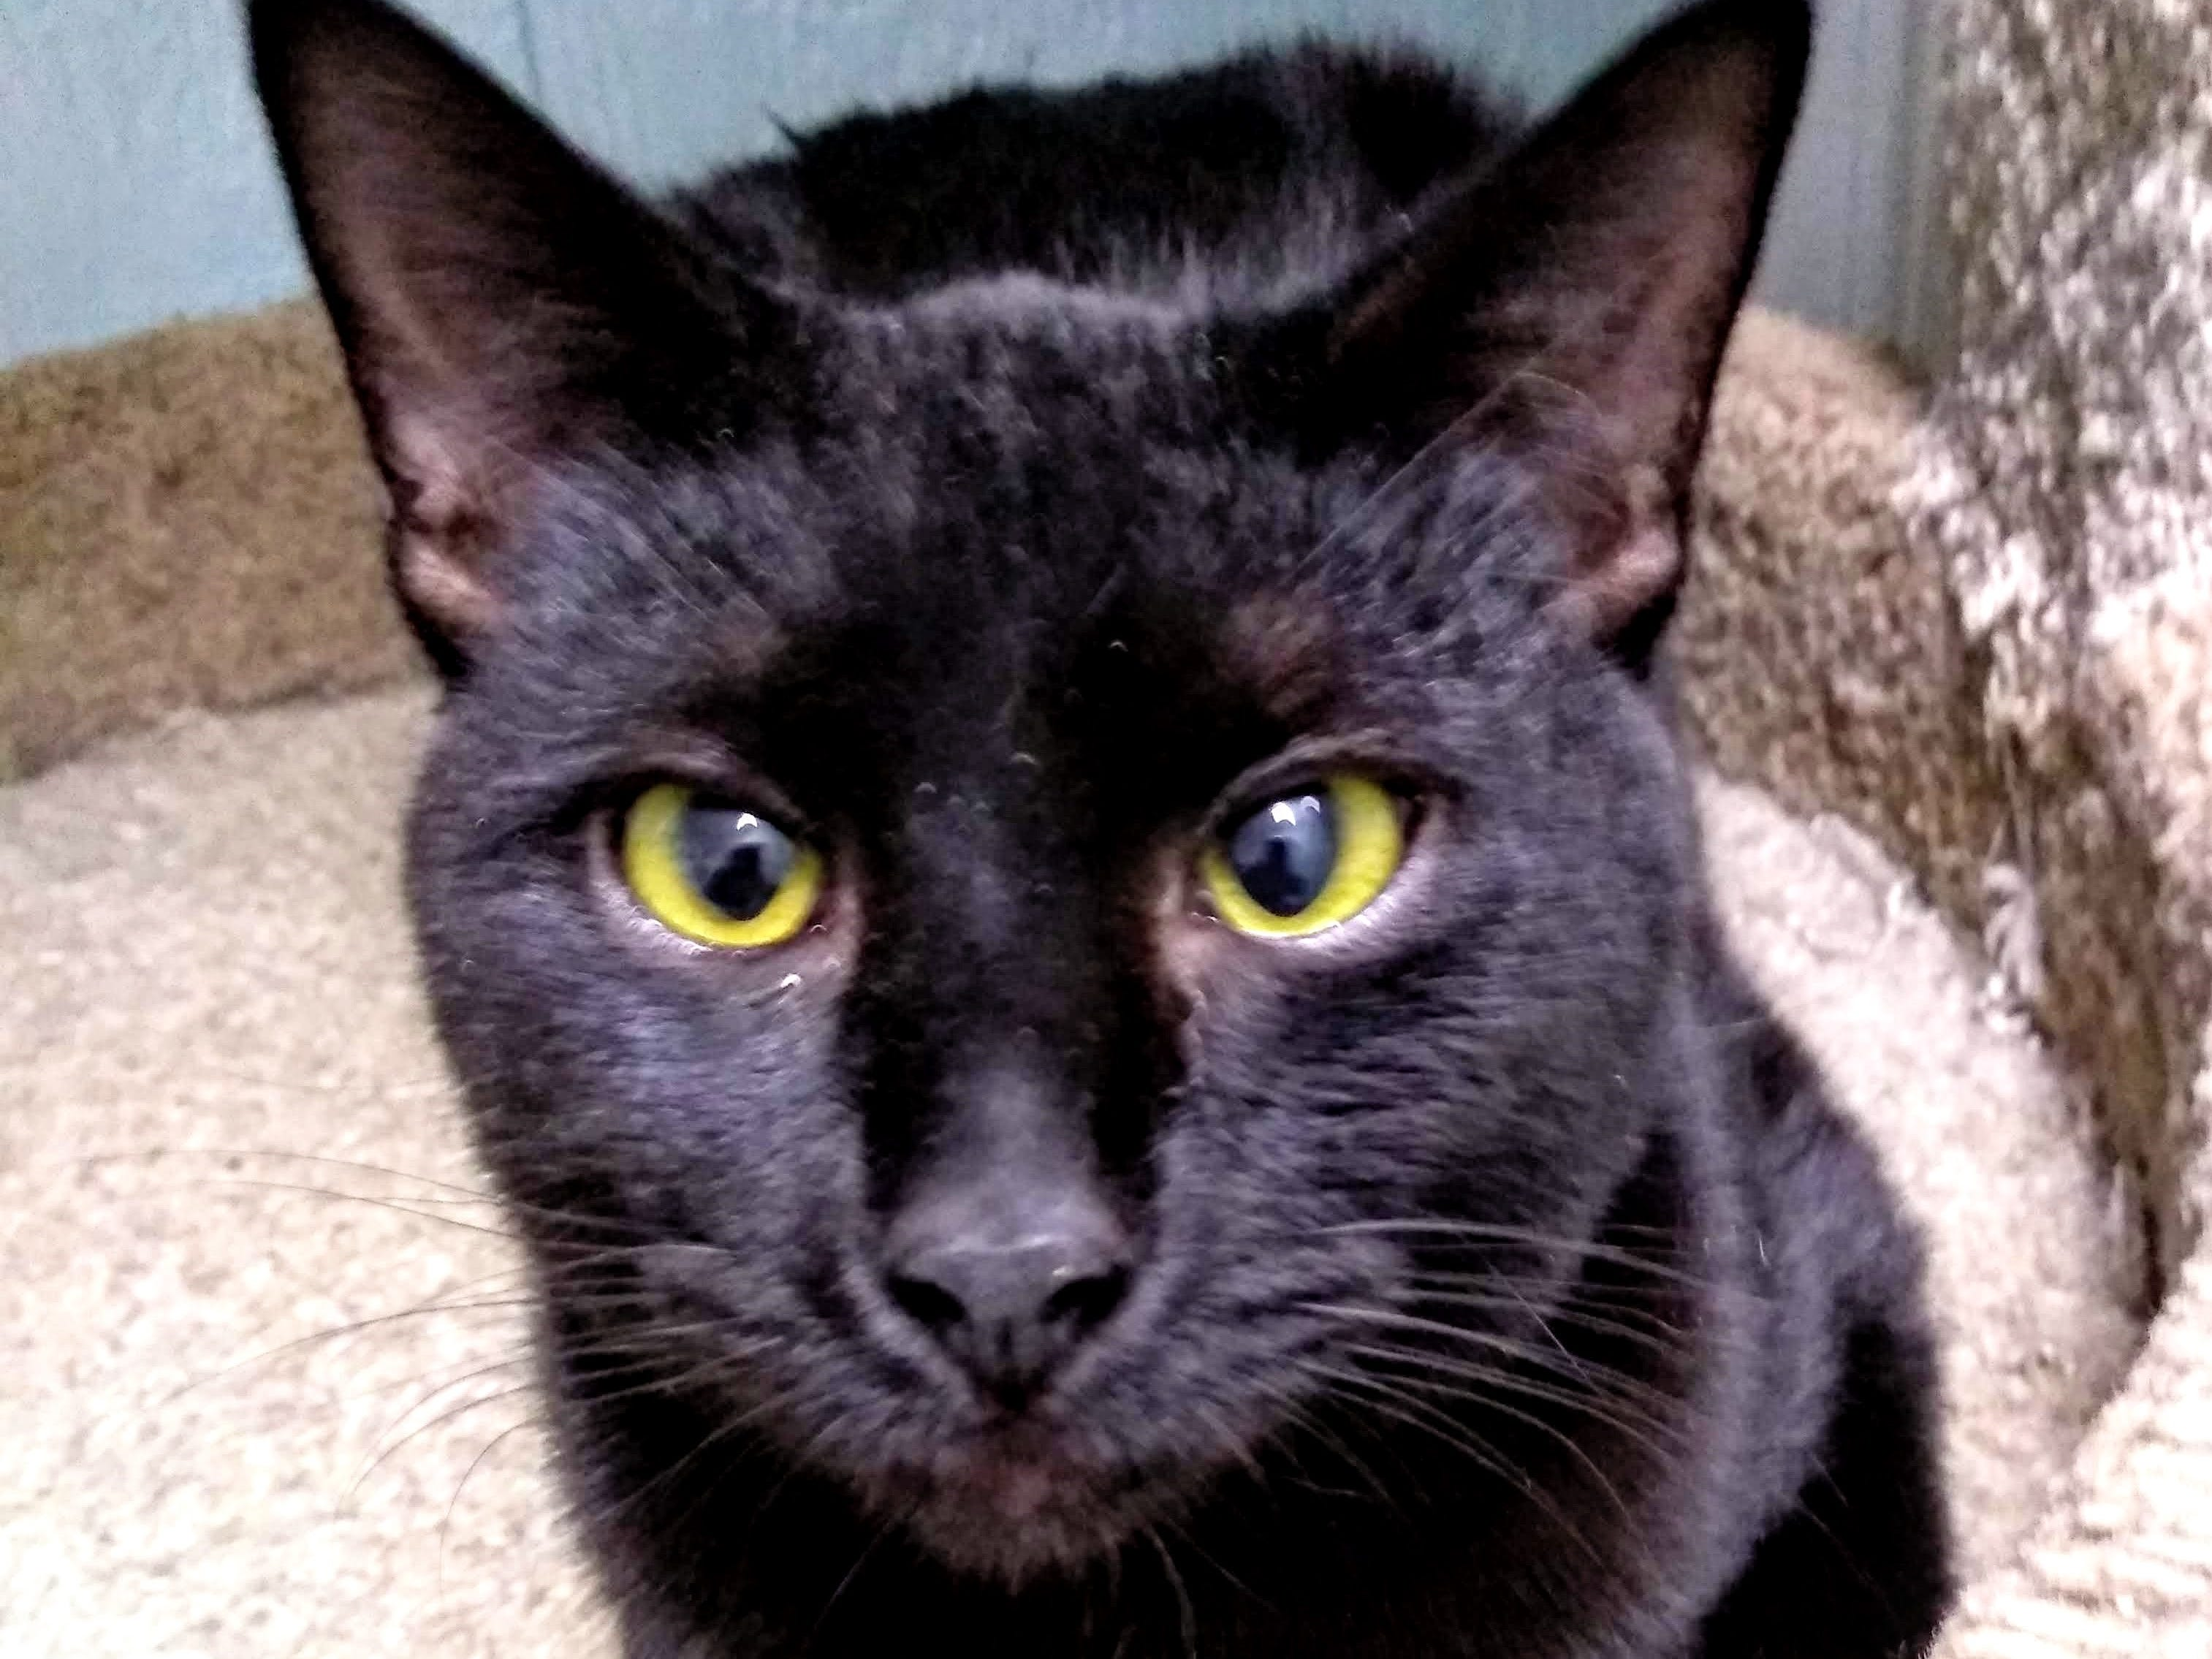 Waylon, nine months, is a super nice cat. He is handsome, mellow, a lover, kind, gentle and likes cats. He makes a perfect model for a mini panther. For more information visit www.sfof.org or call 503-362-5611.